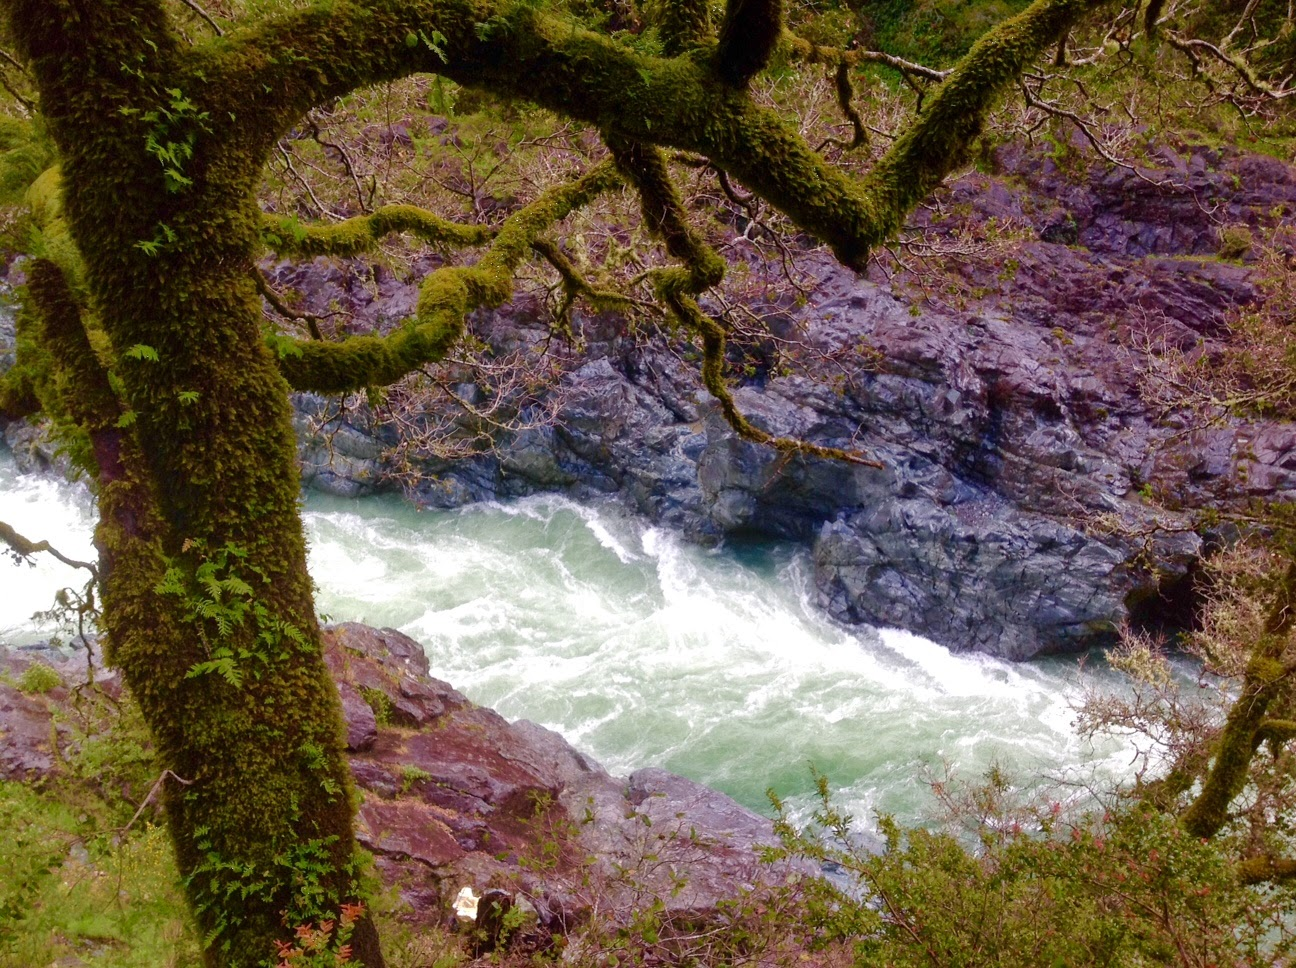 Smith River gorge near Hiouchi, California